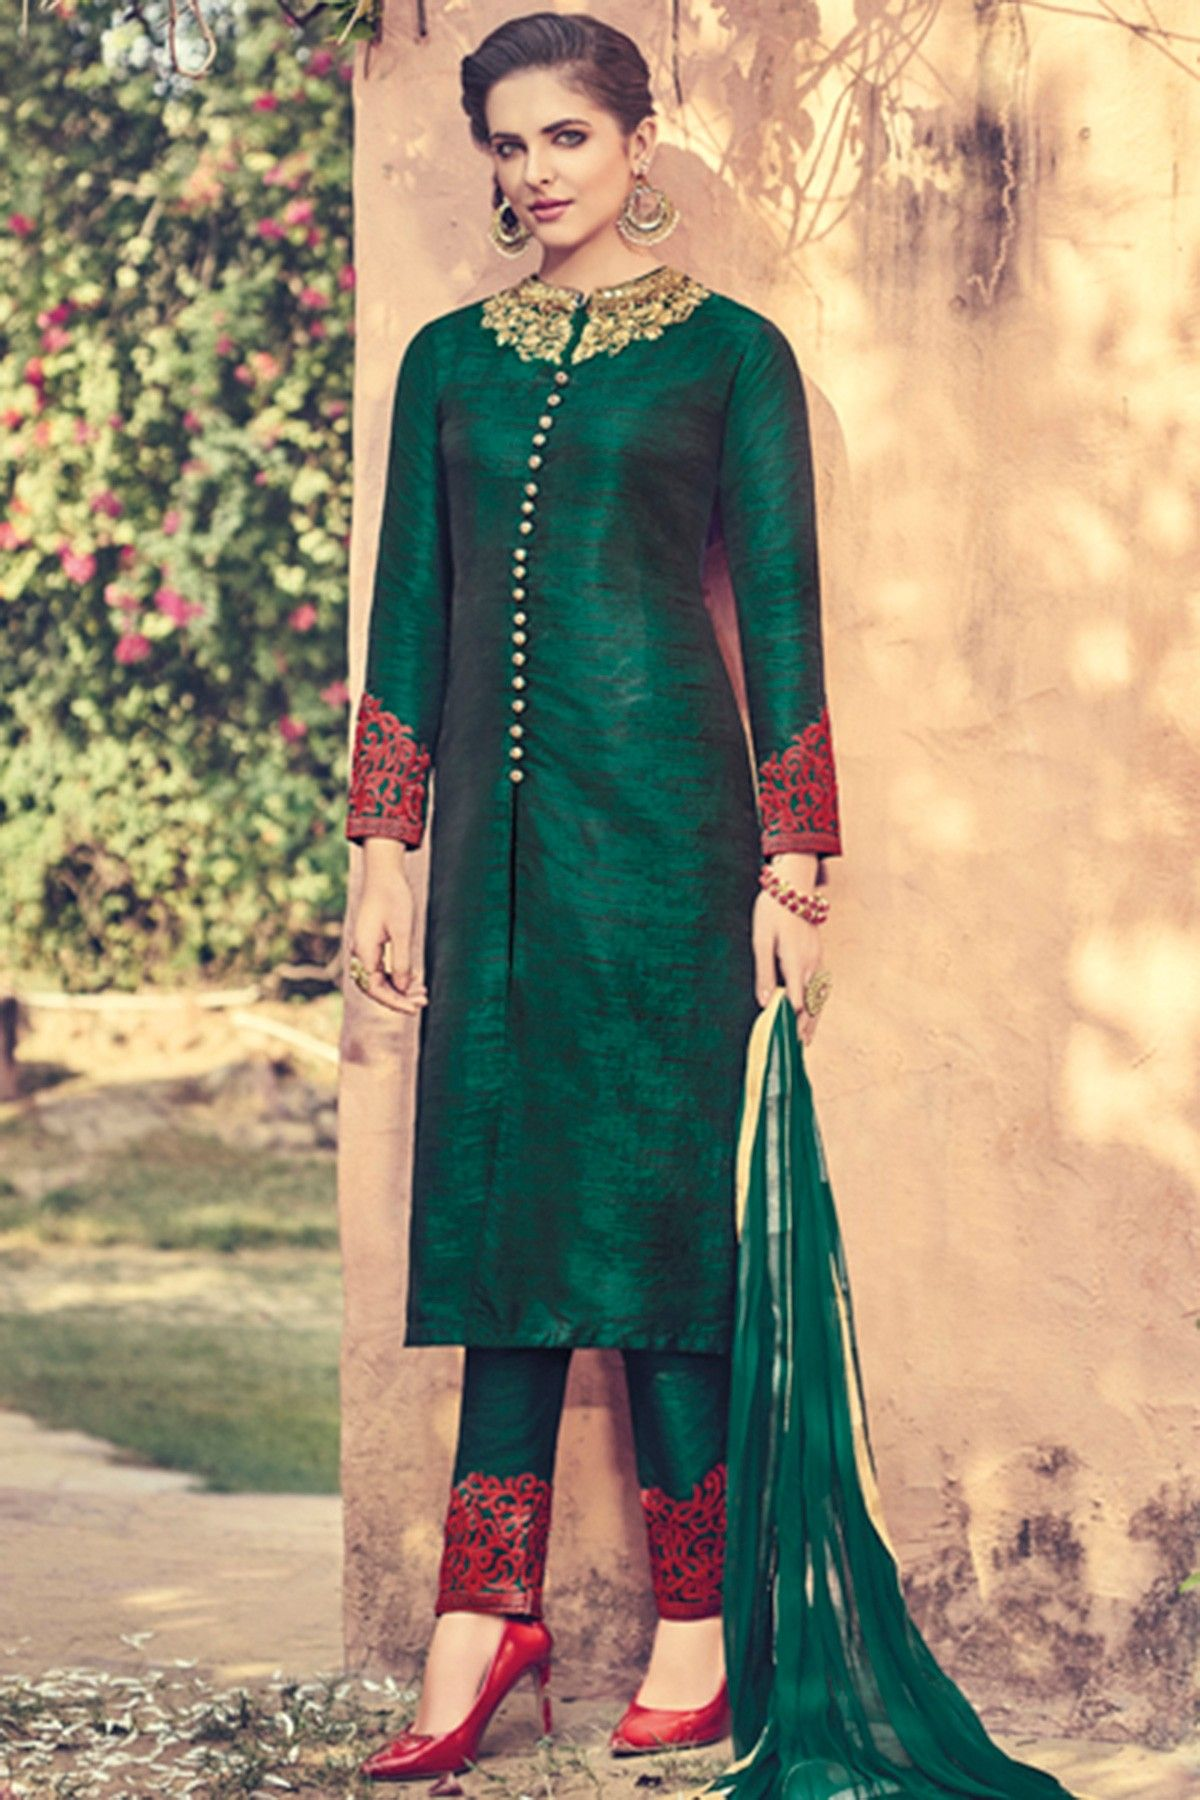 d51f4db085 Dark #green & #maroon pure raw #silk marvelous #kameez with cigarette